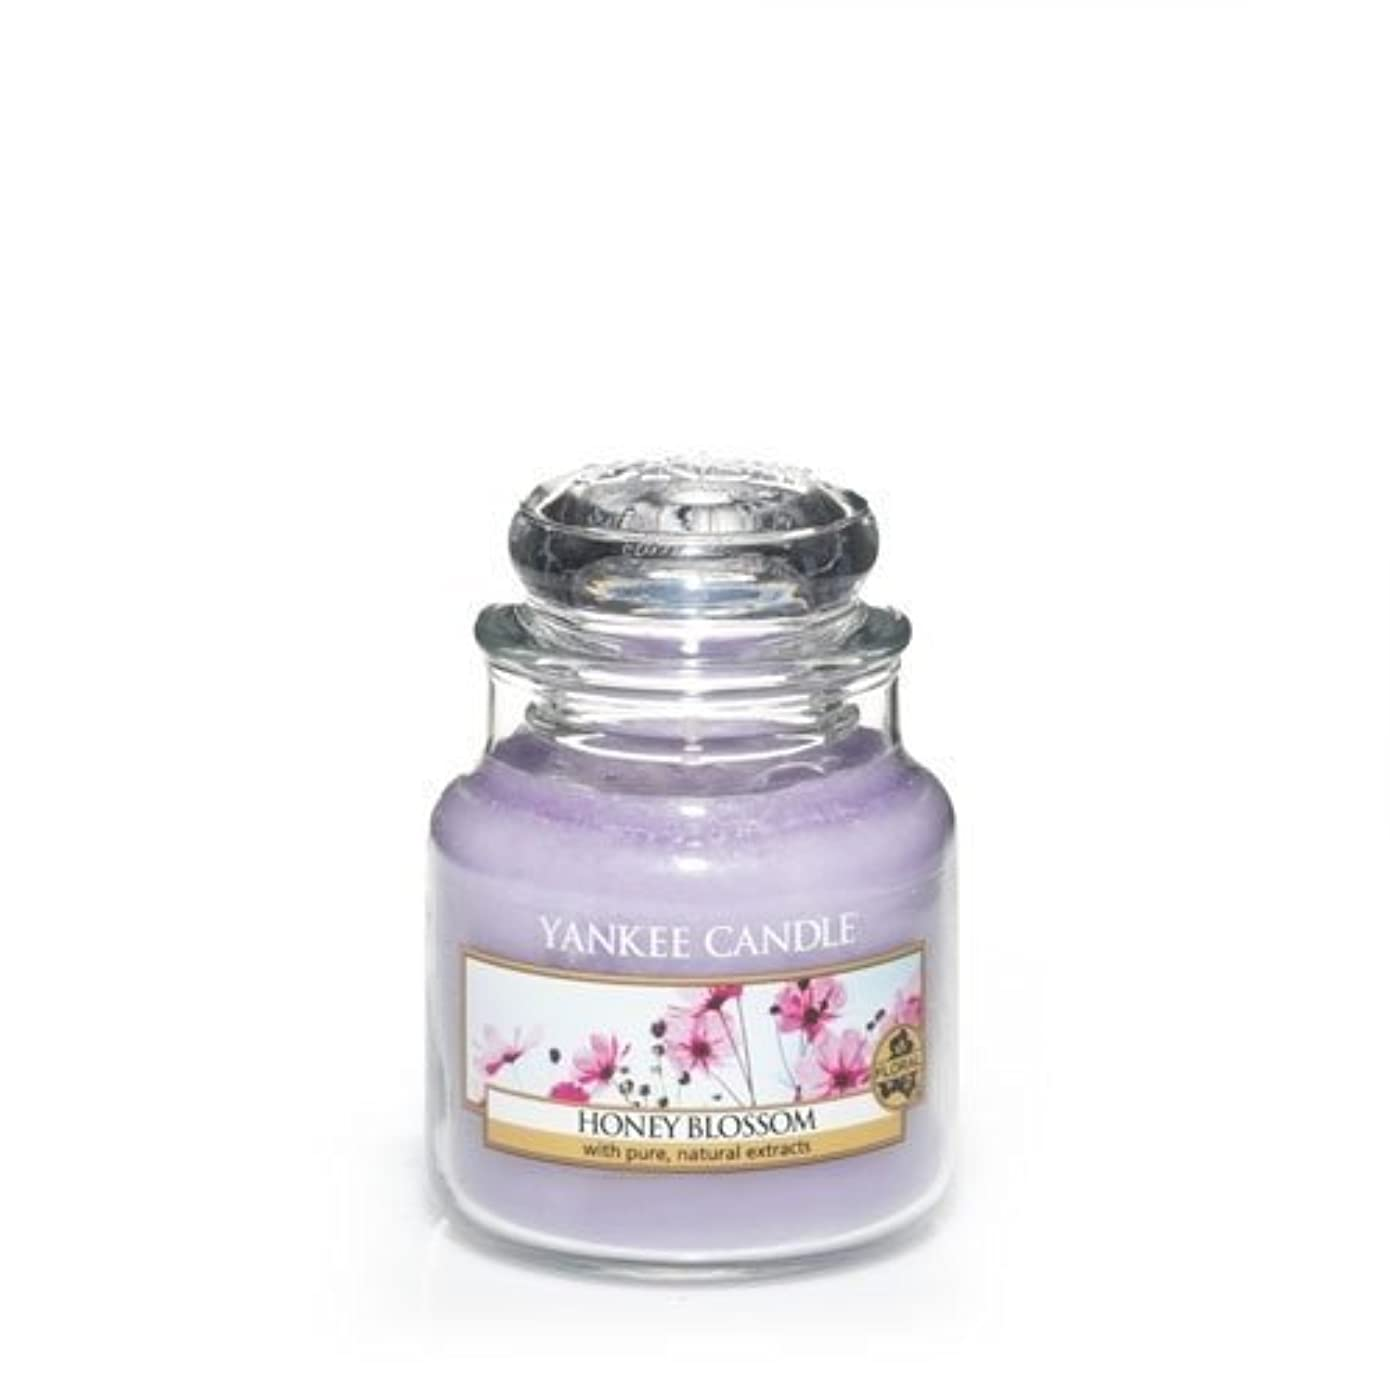 タイマーソーセージ放棄Yankee Candle Honey Blossom Small Jar Candle, Floral Scent by Yankee Candle [並行輸入品]